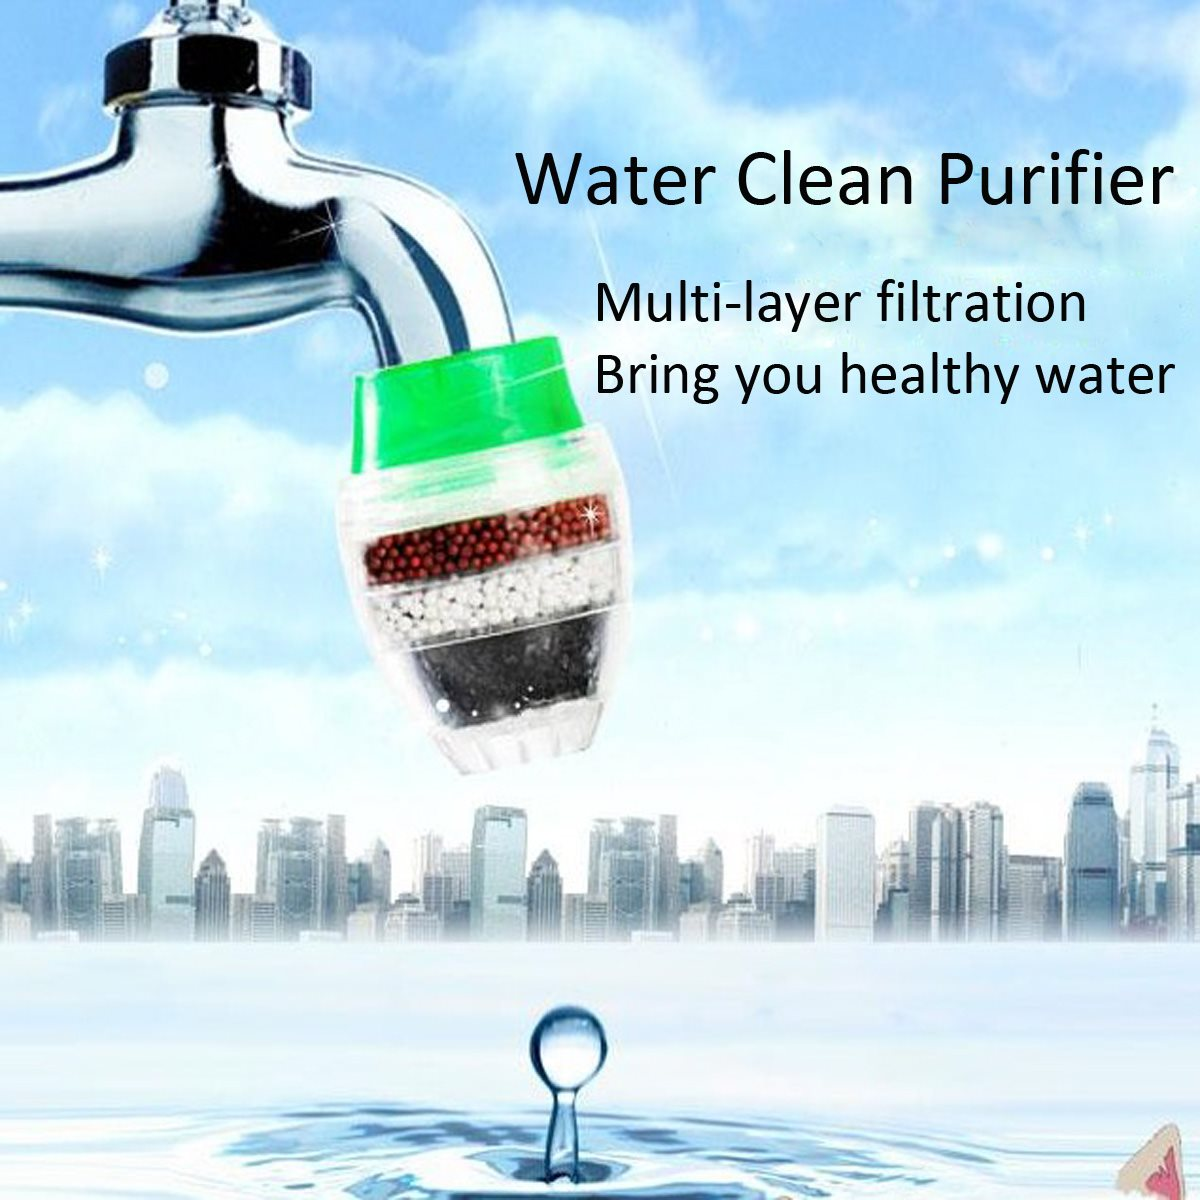 Water Filter Carbon Home Household Kitchen Mini Faucet Tap Water Clean Purifier Filter Filtration Cartridge 1pcs kitchen water filter faucet healthy ceramic cartridge tap household activated carbon faucet mineral clear filter for water